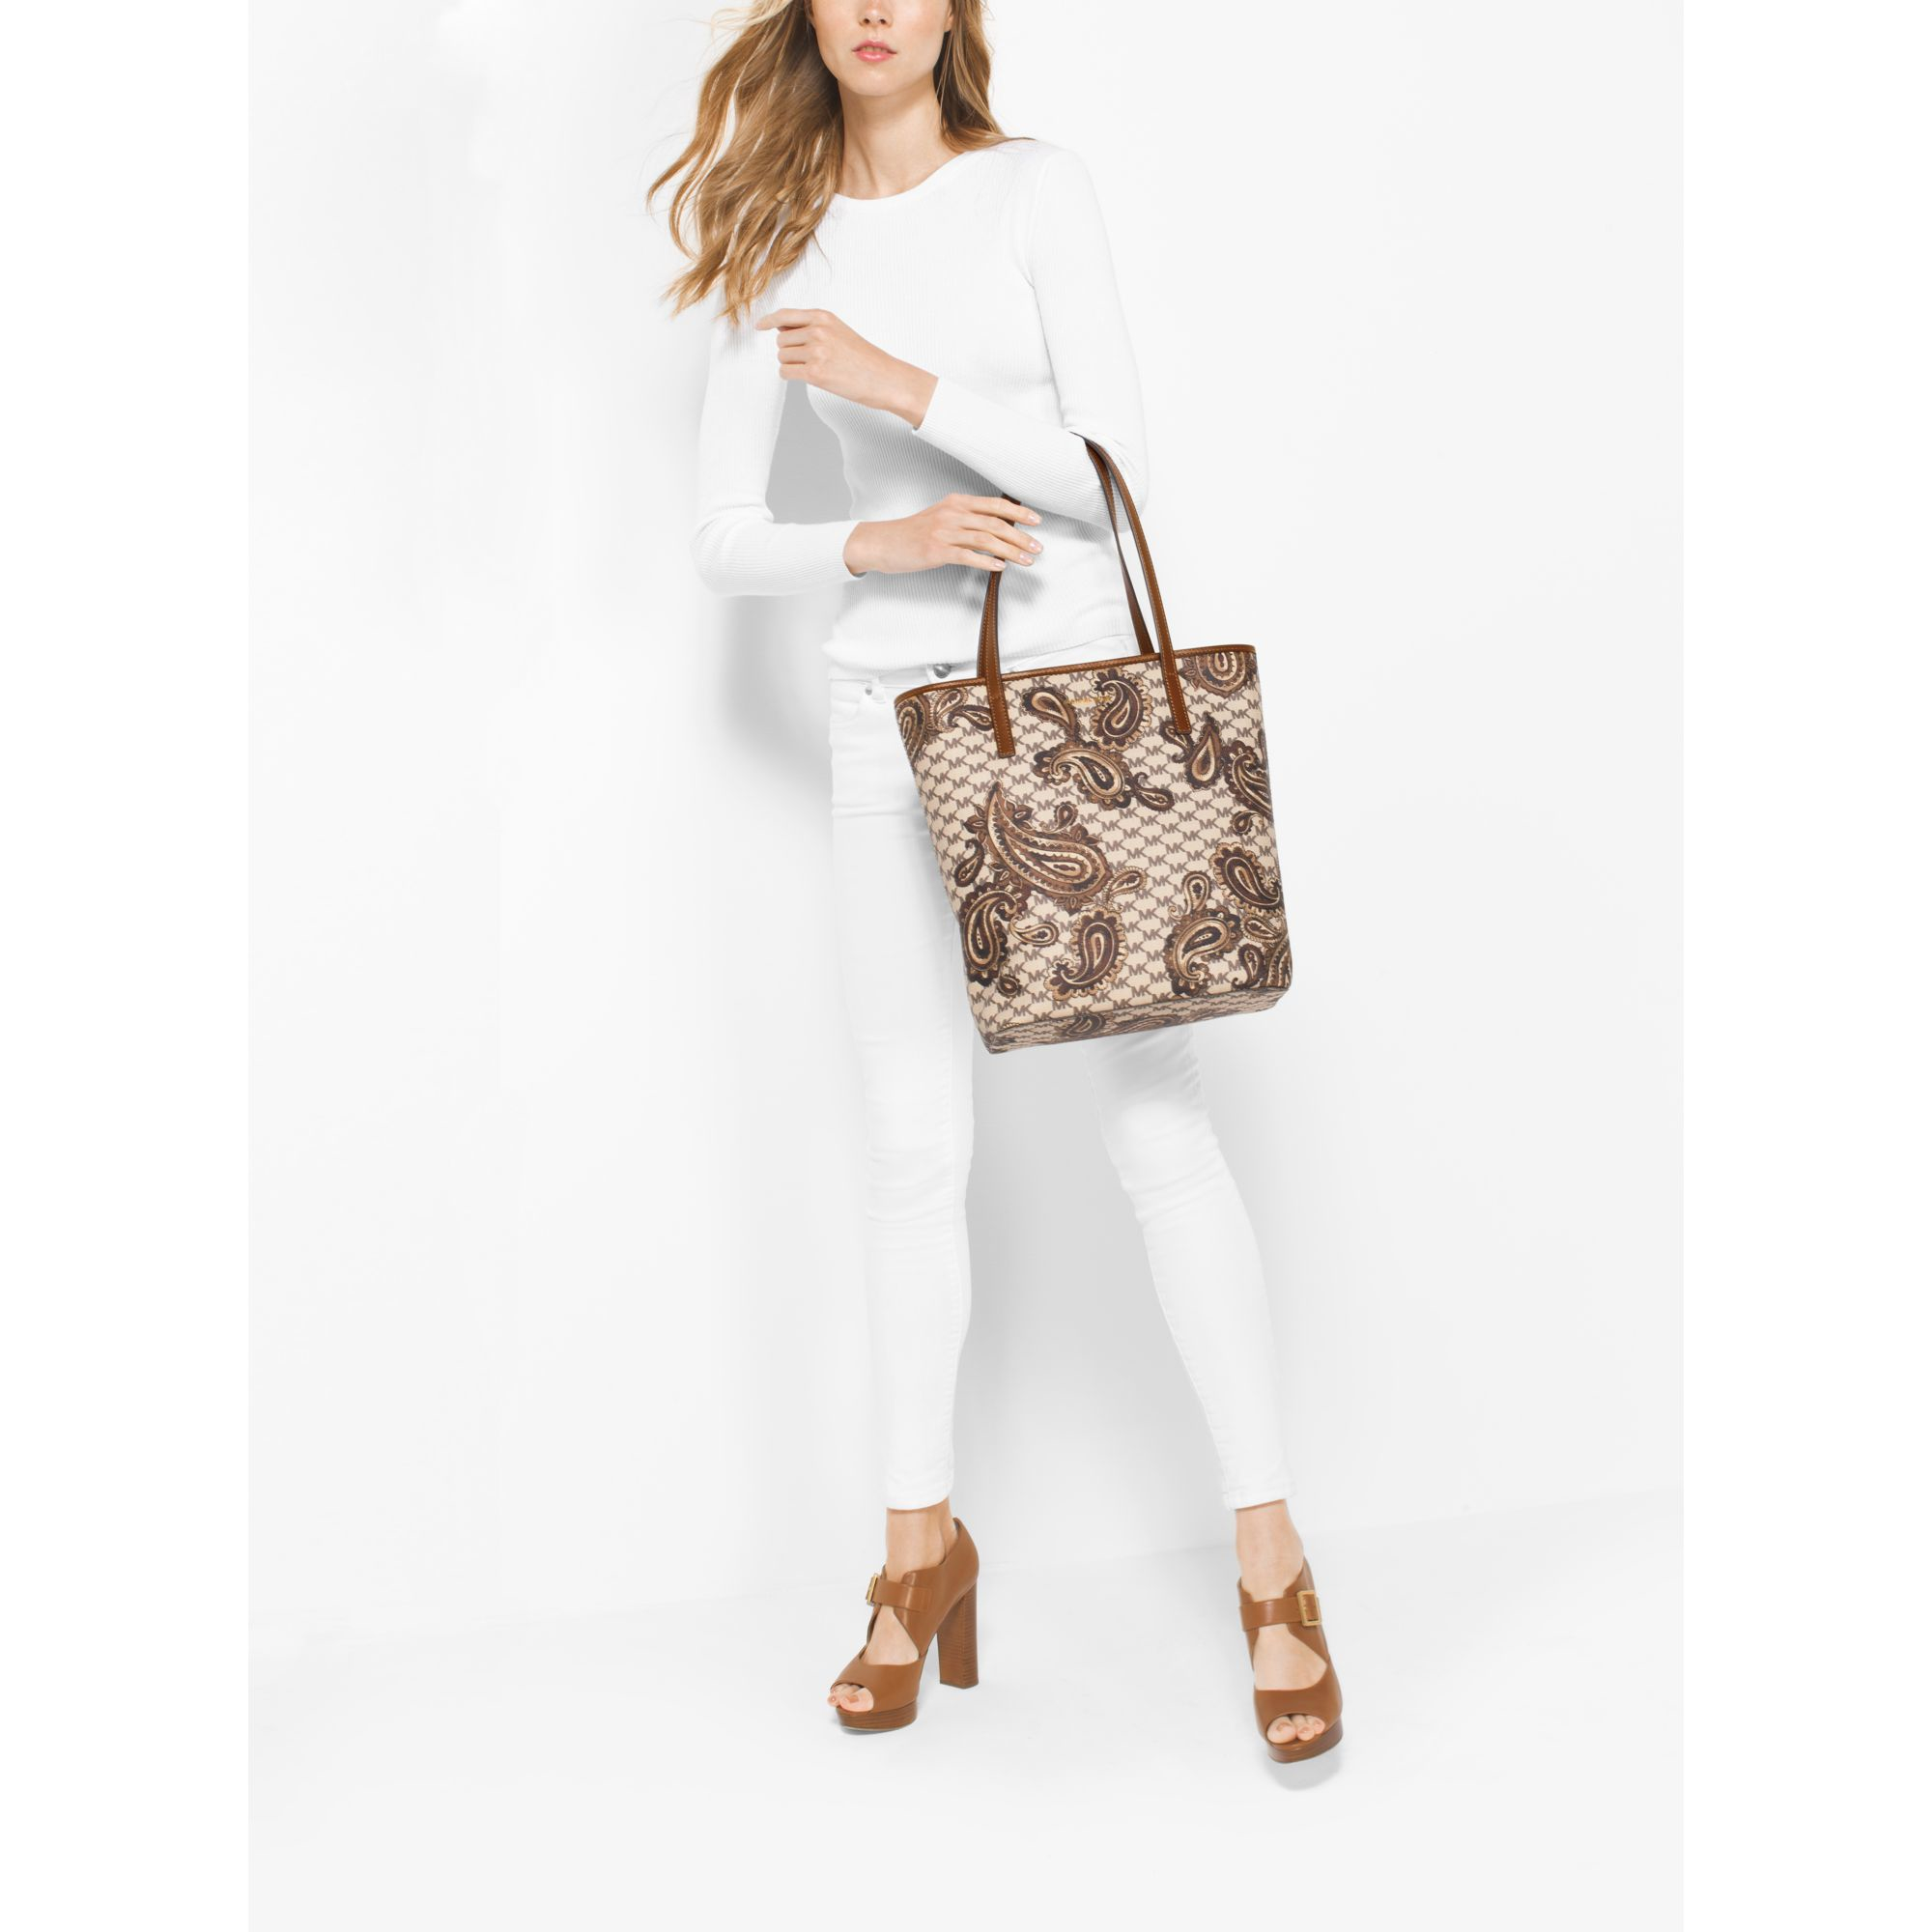 230afa2946d7 ... Michael kors Emry Large Northsouth Heritage Paisley Tote in ...